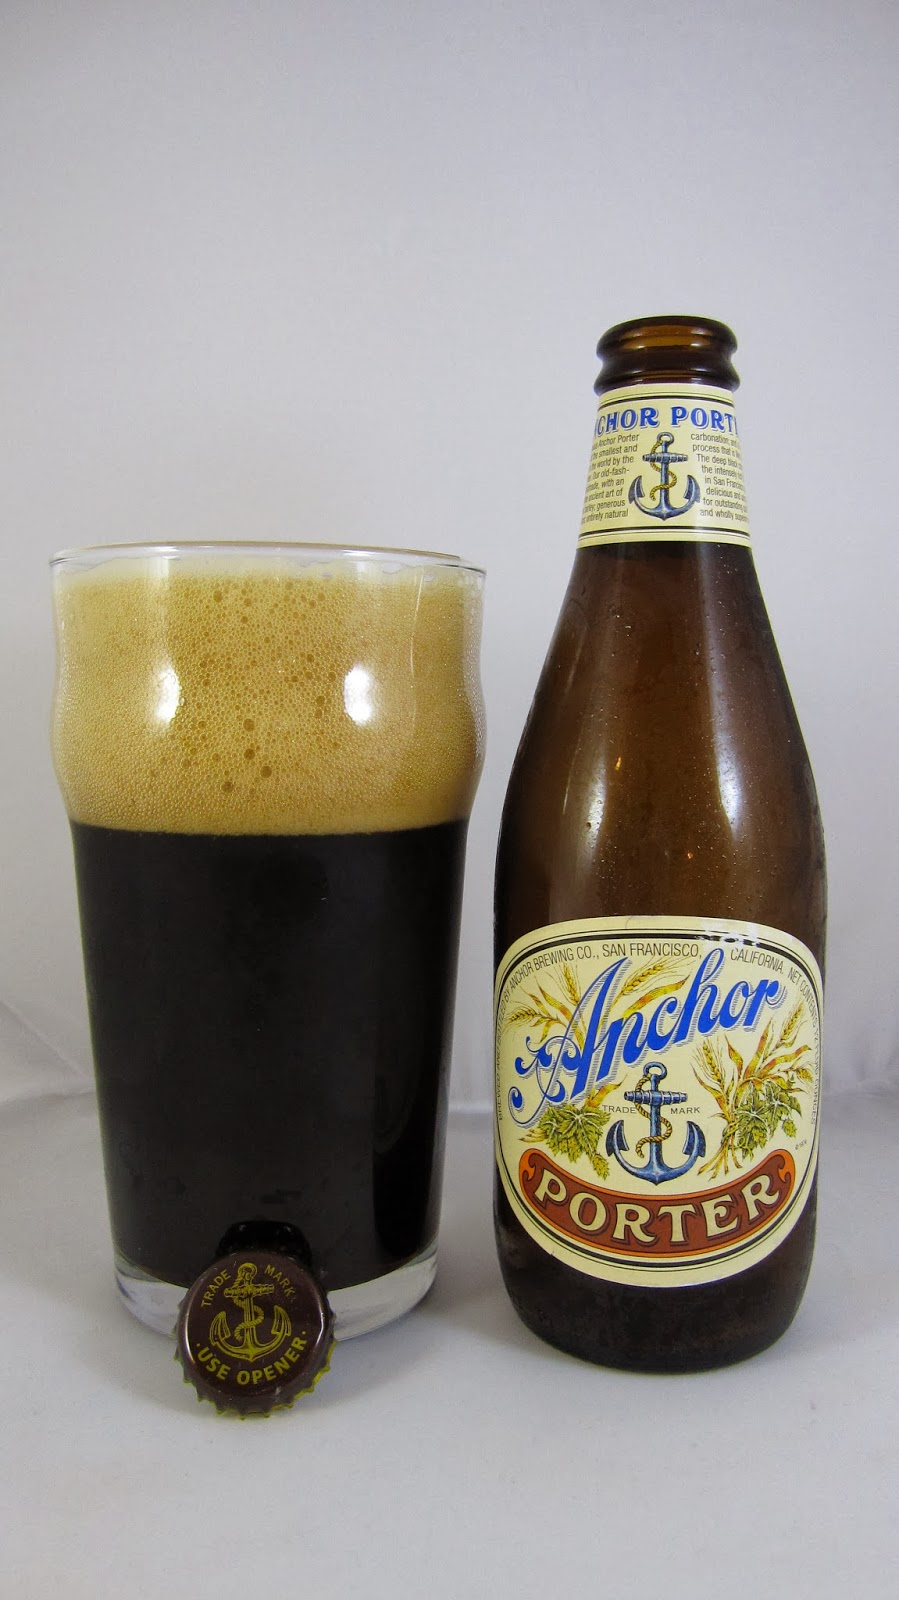 Le Meilleur Chad Z Beer Reviews Anchor Porter Ce Mois Ci Original 1024 x 768